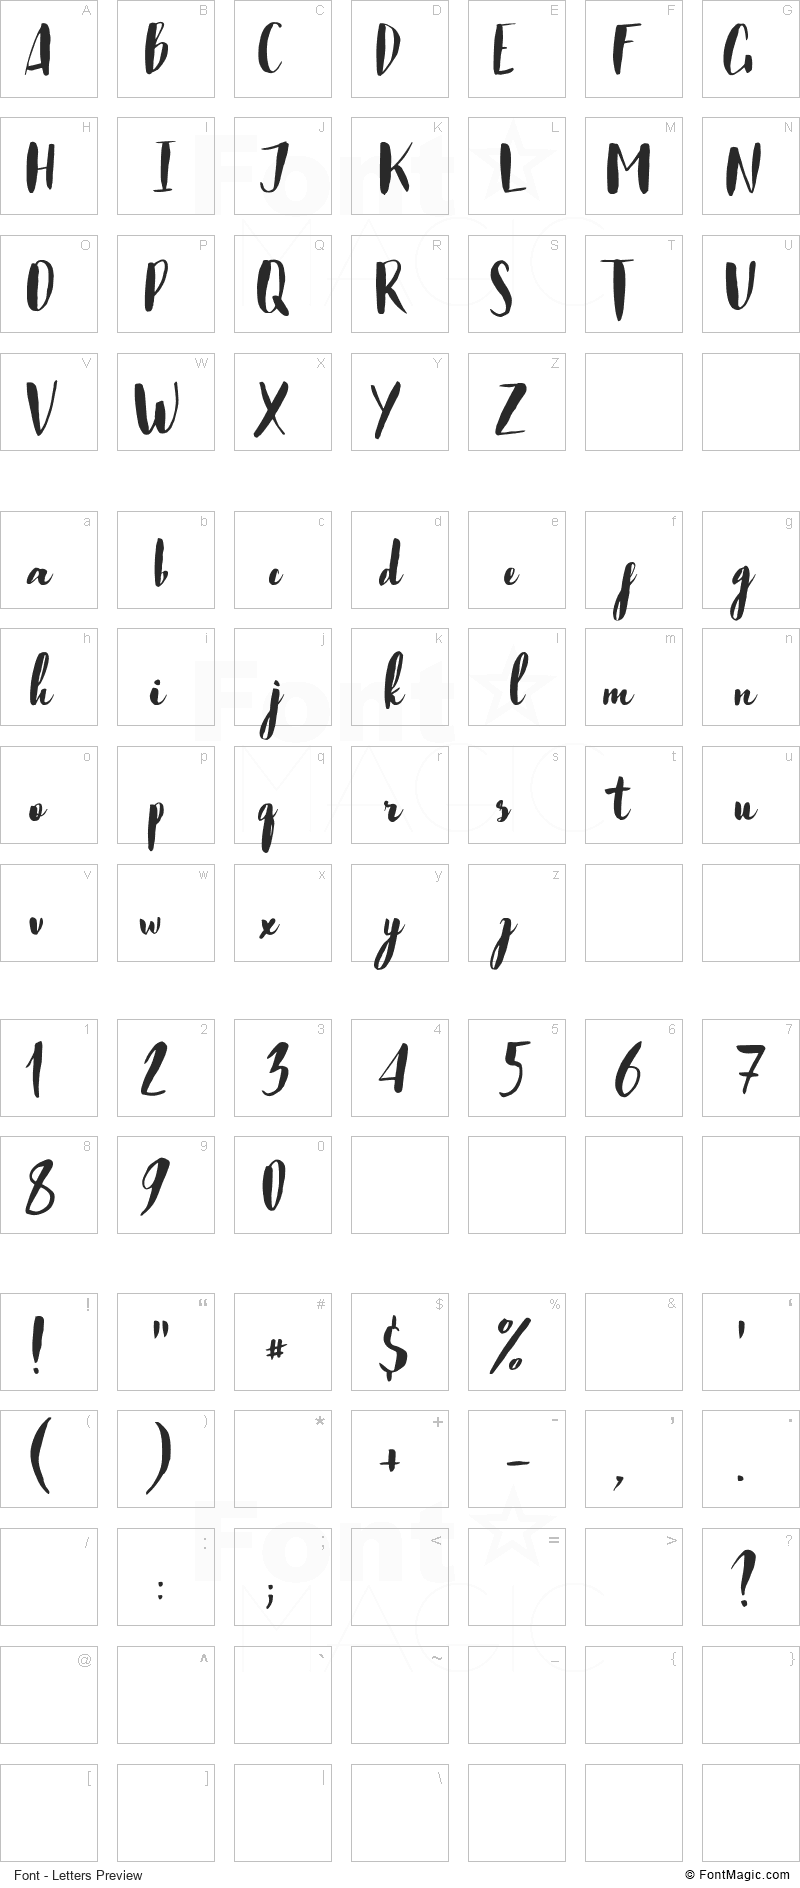 Just Believe Font - All Latters Preview Chart